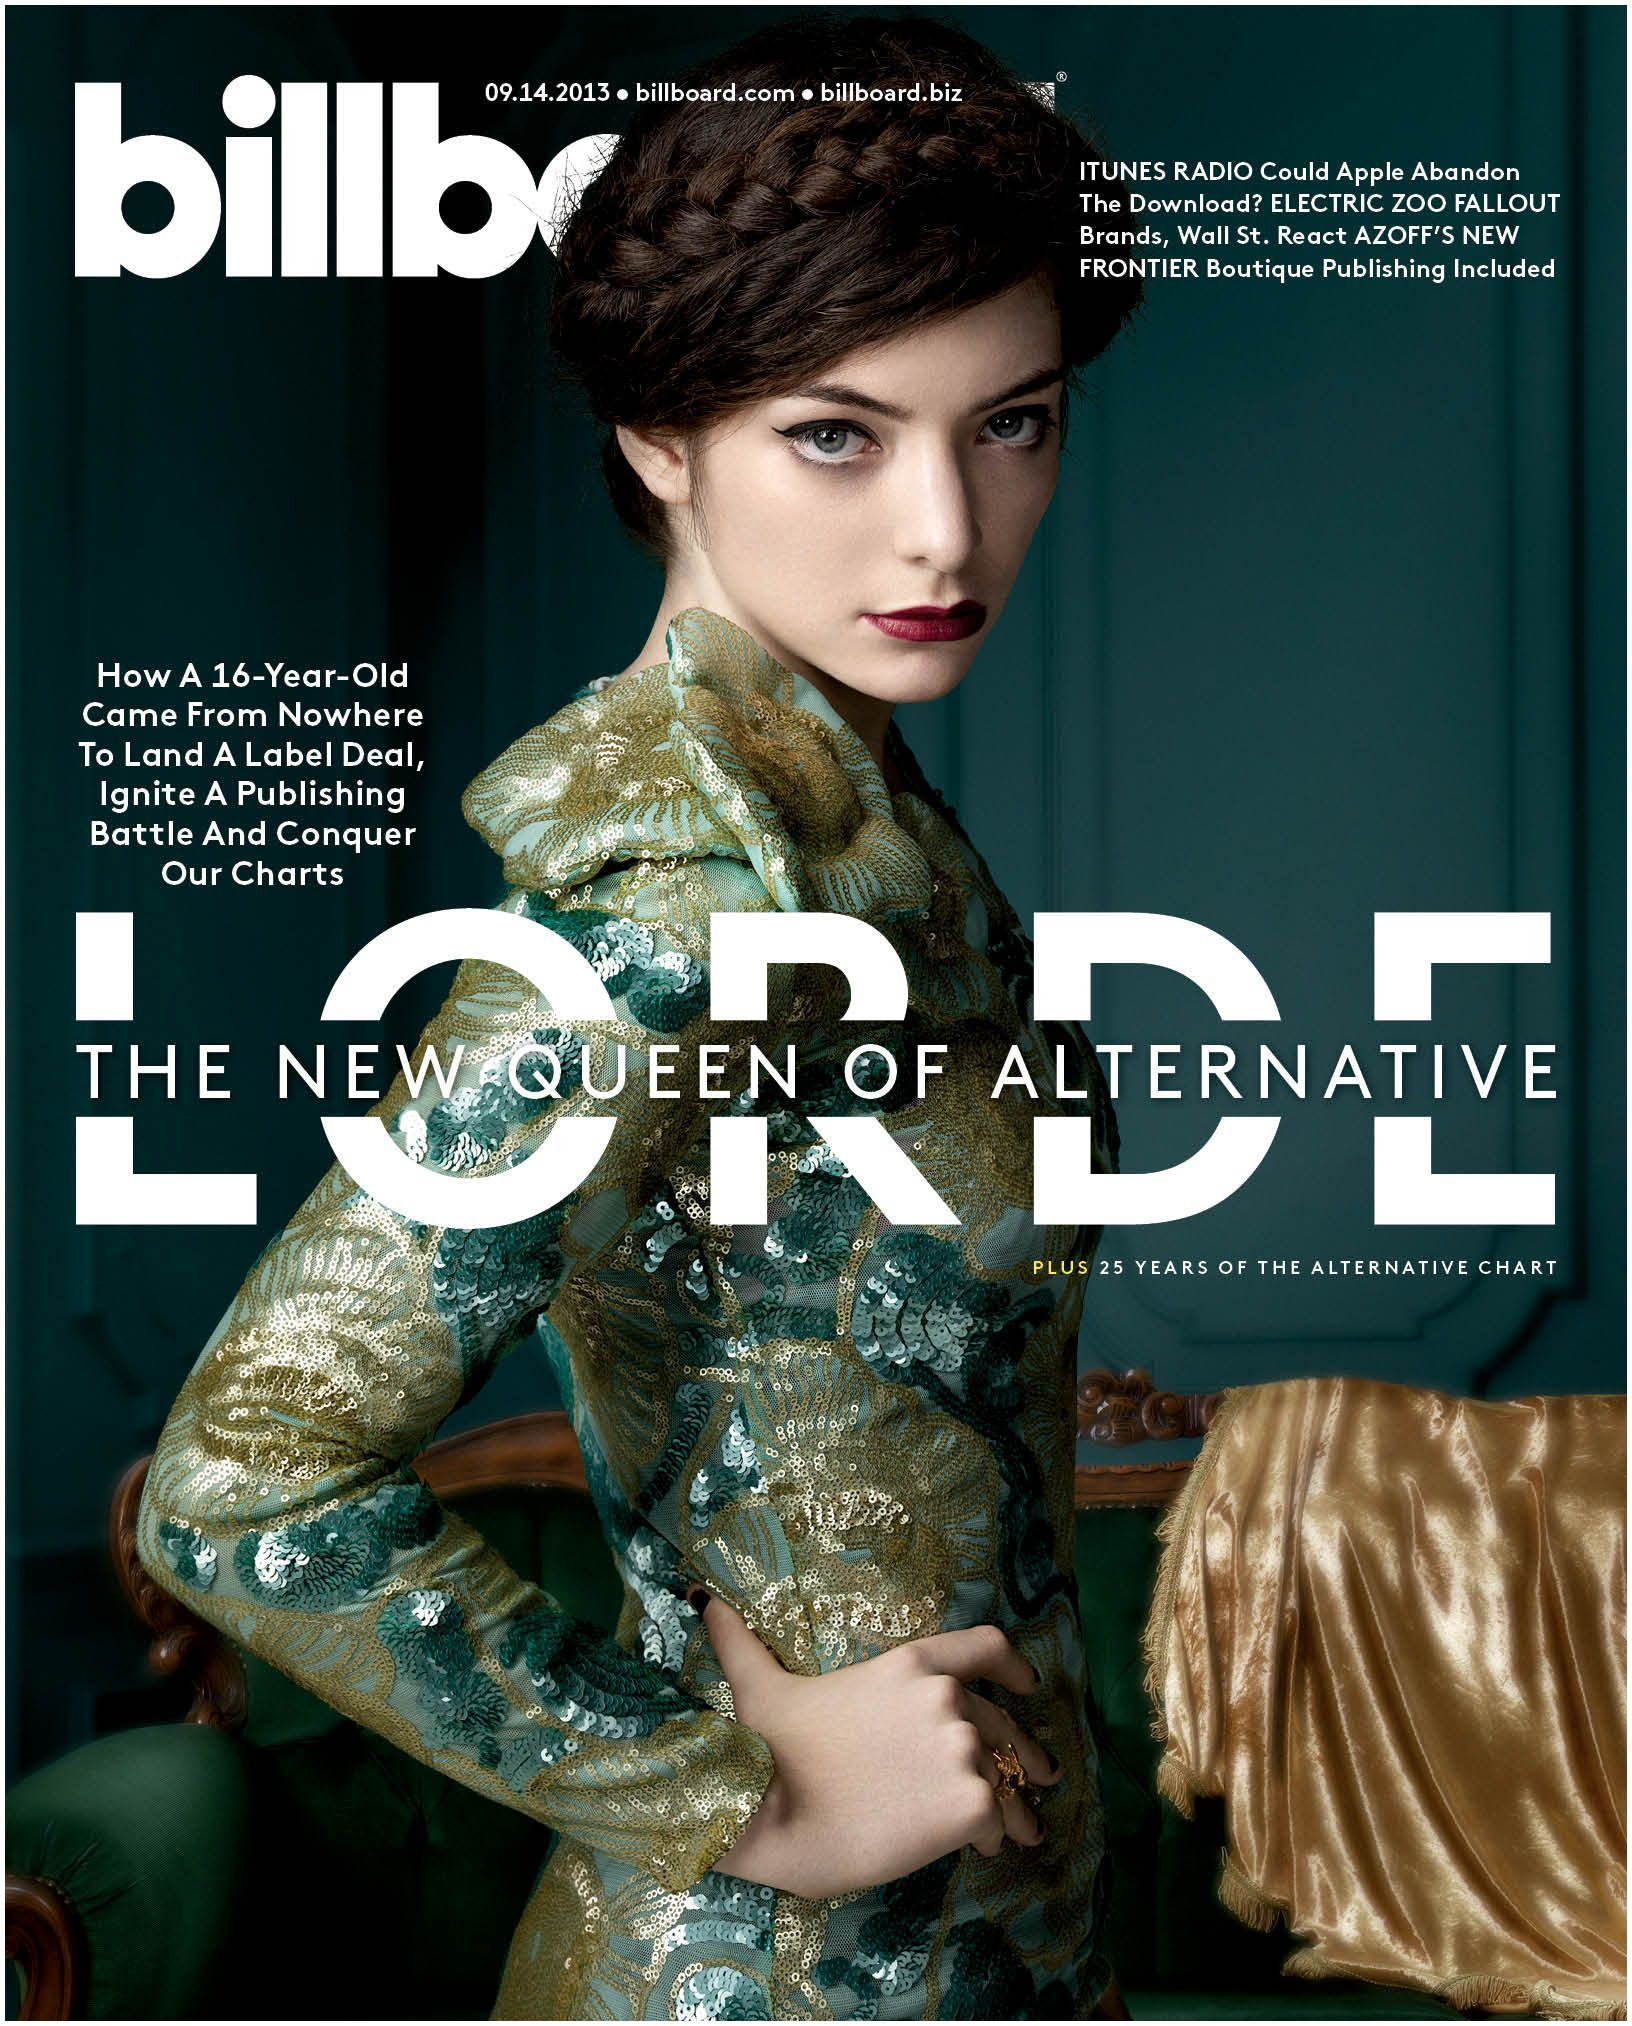 Lorde high resolution Billboard cover